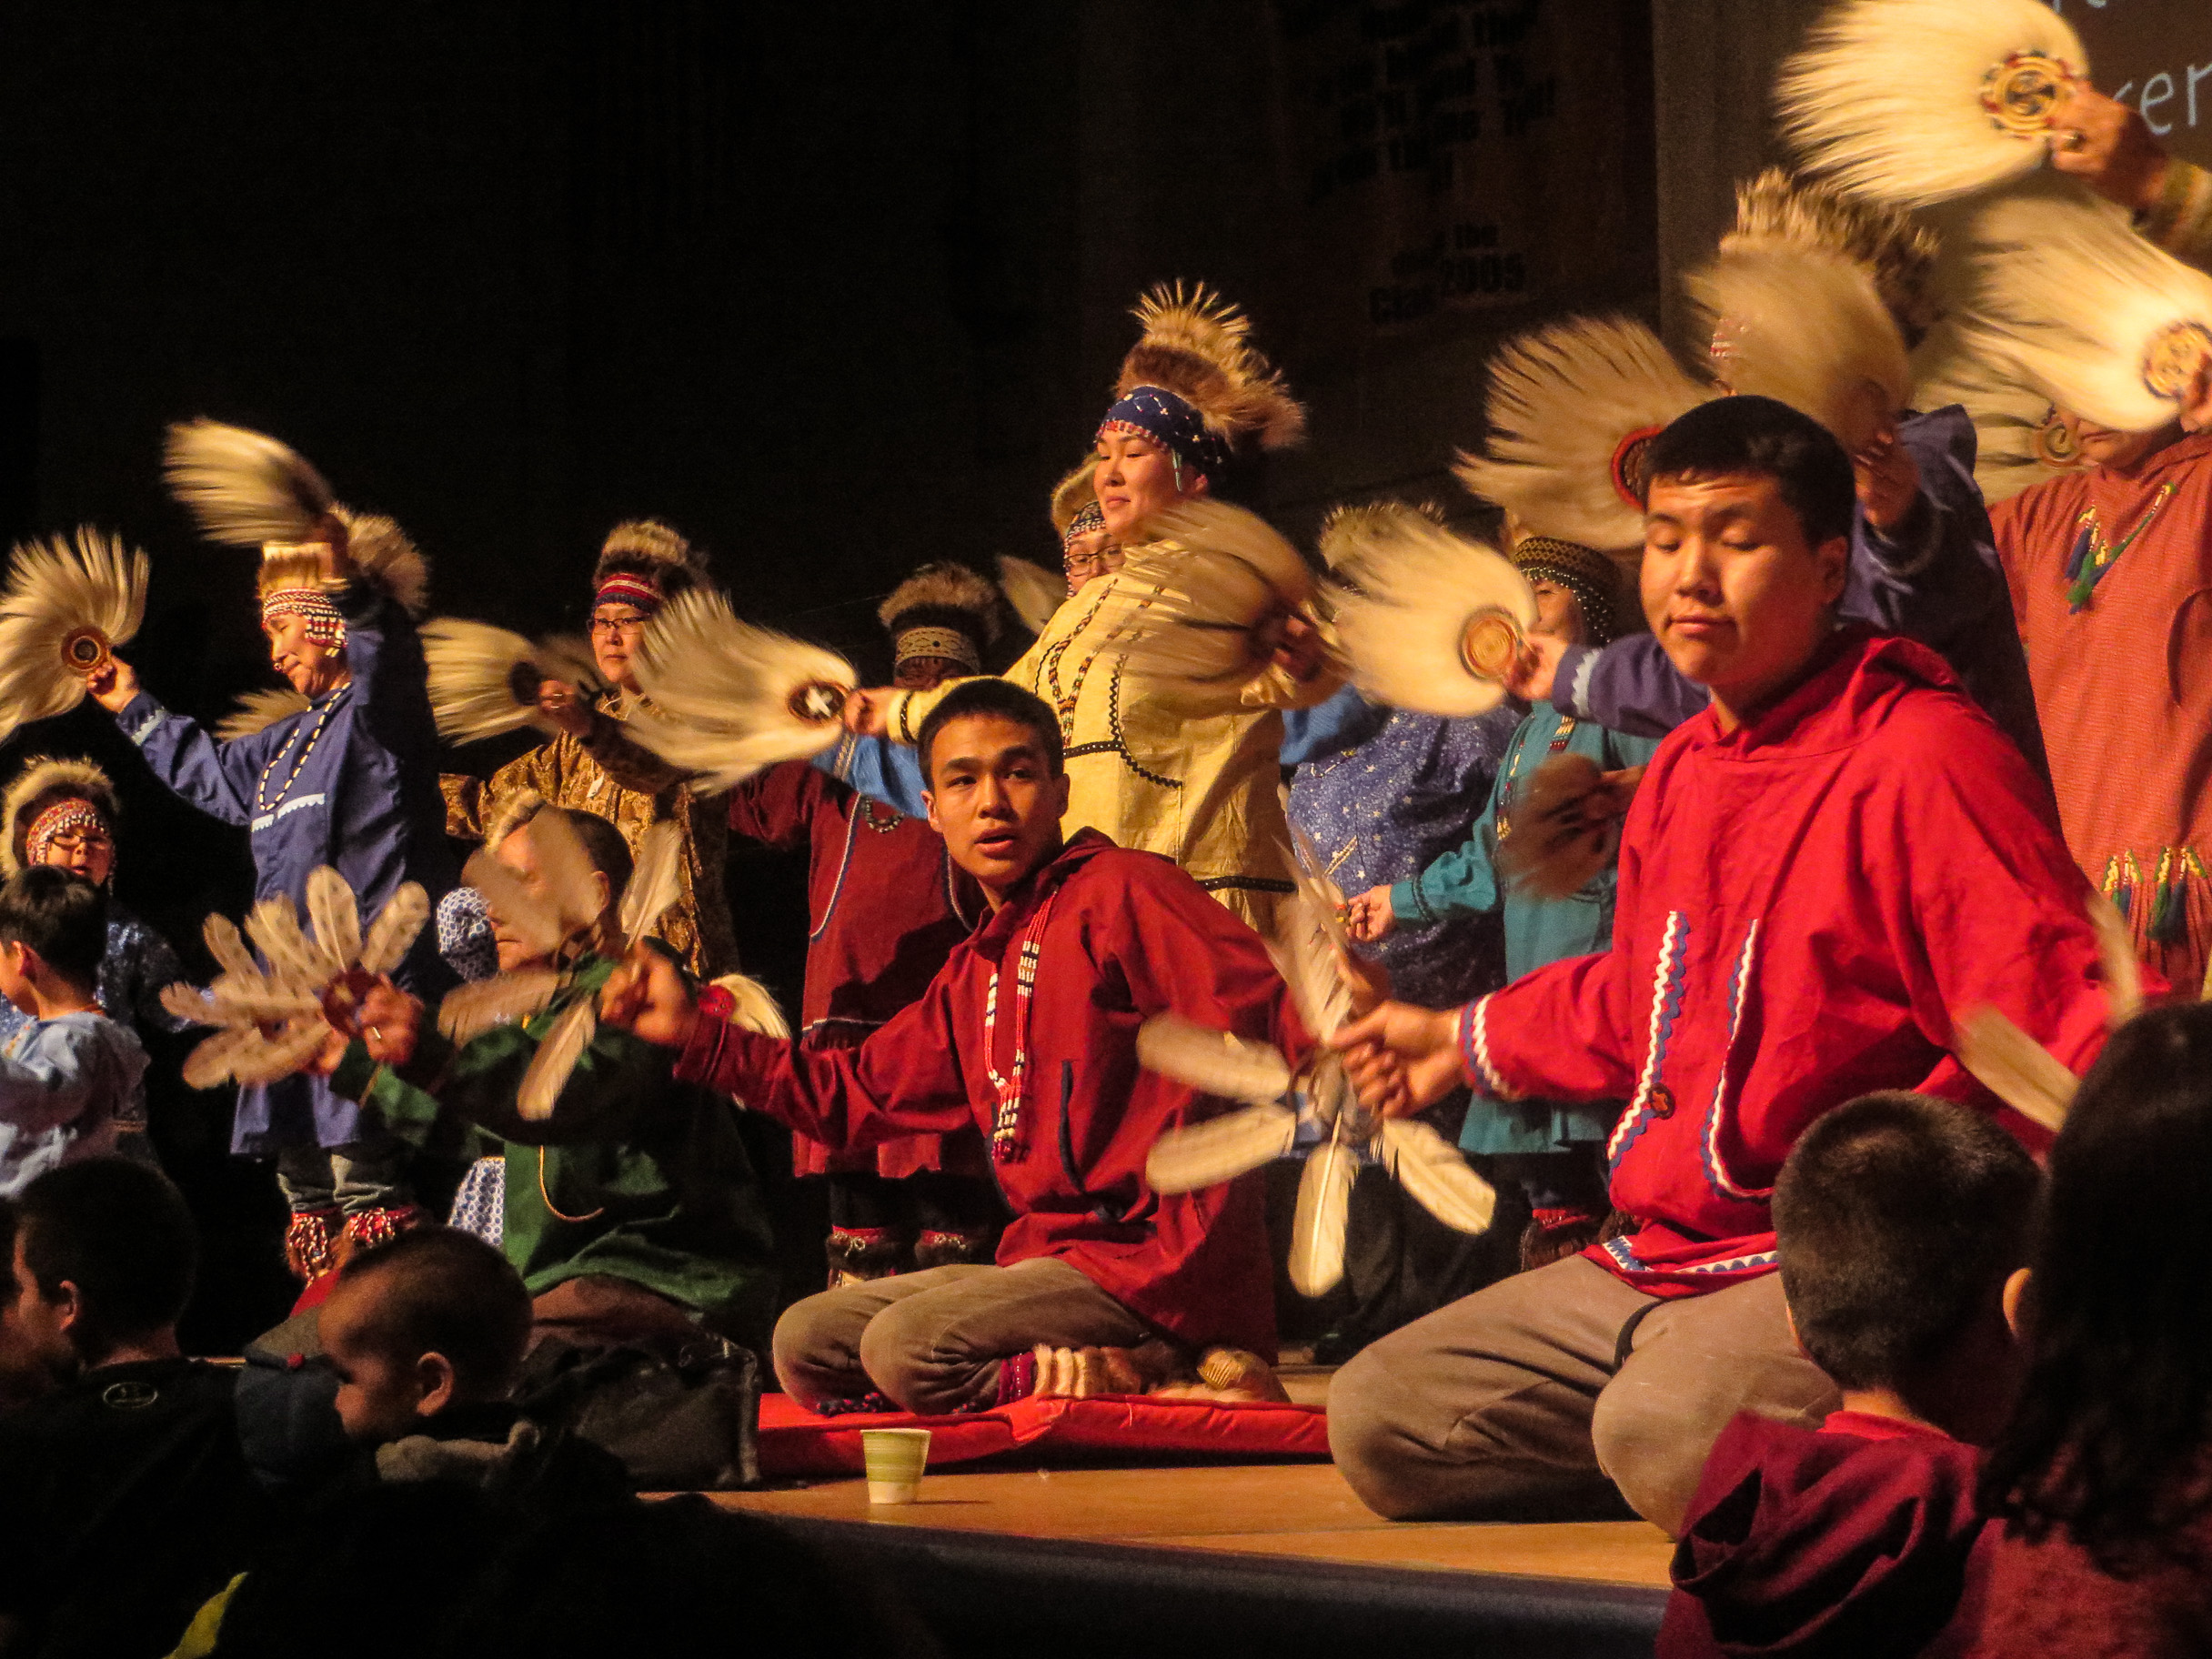 Byron Nicholai performs with the Toksook Bay Traditional Dancers. (Photo by Laura Kraegel, KNOM - Nome)